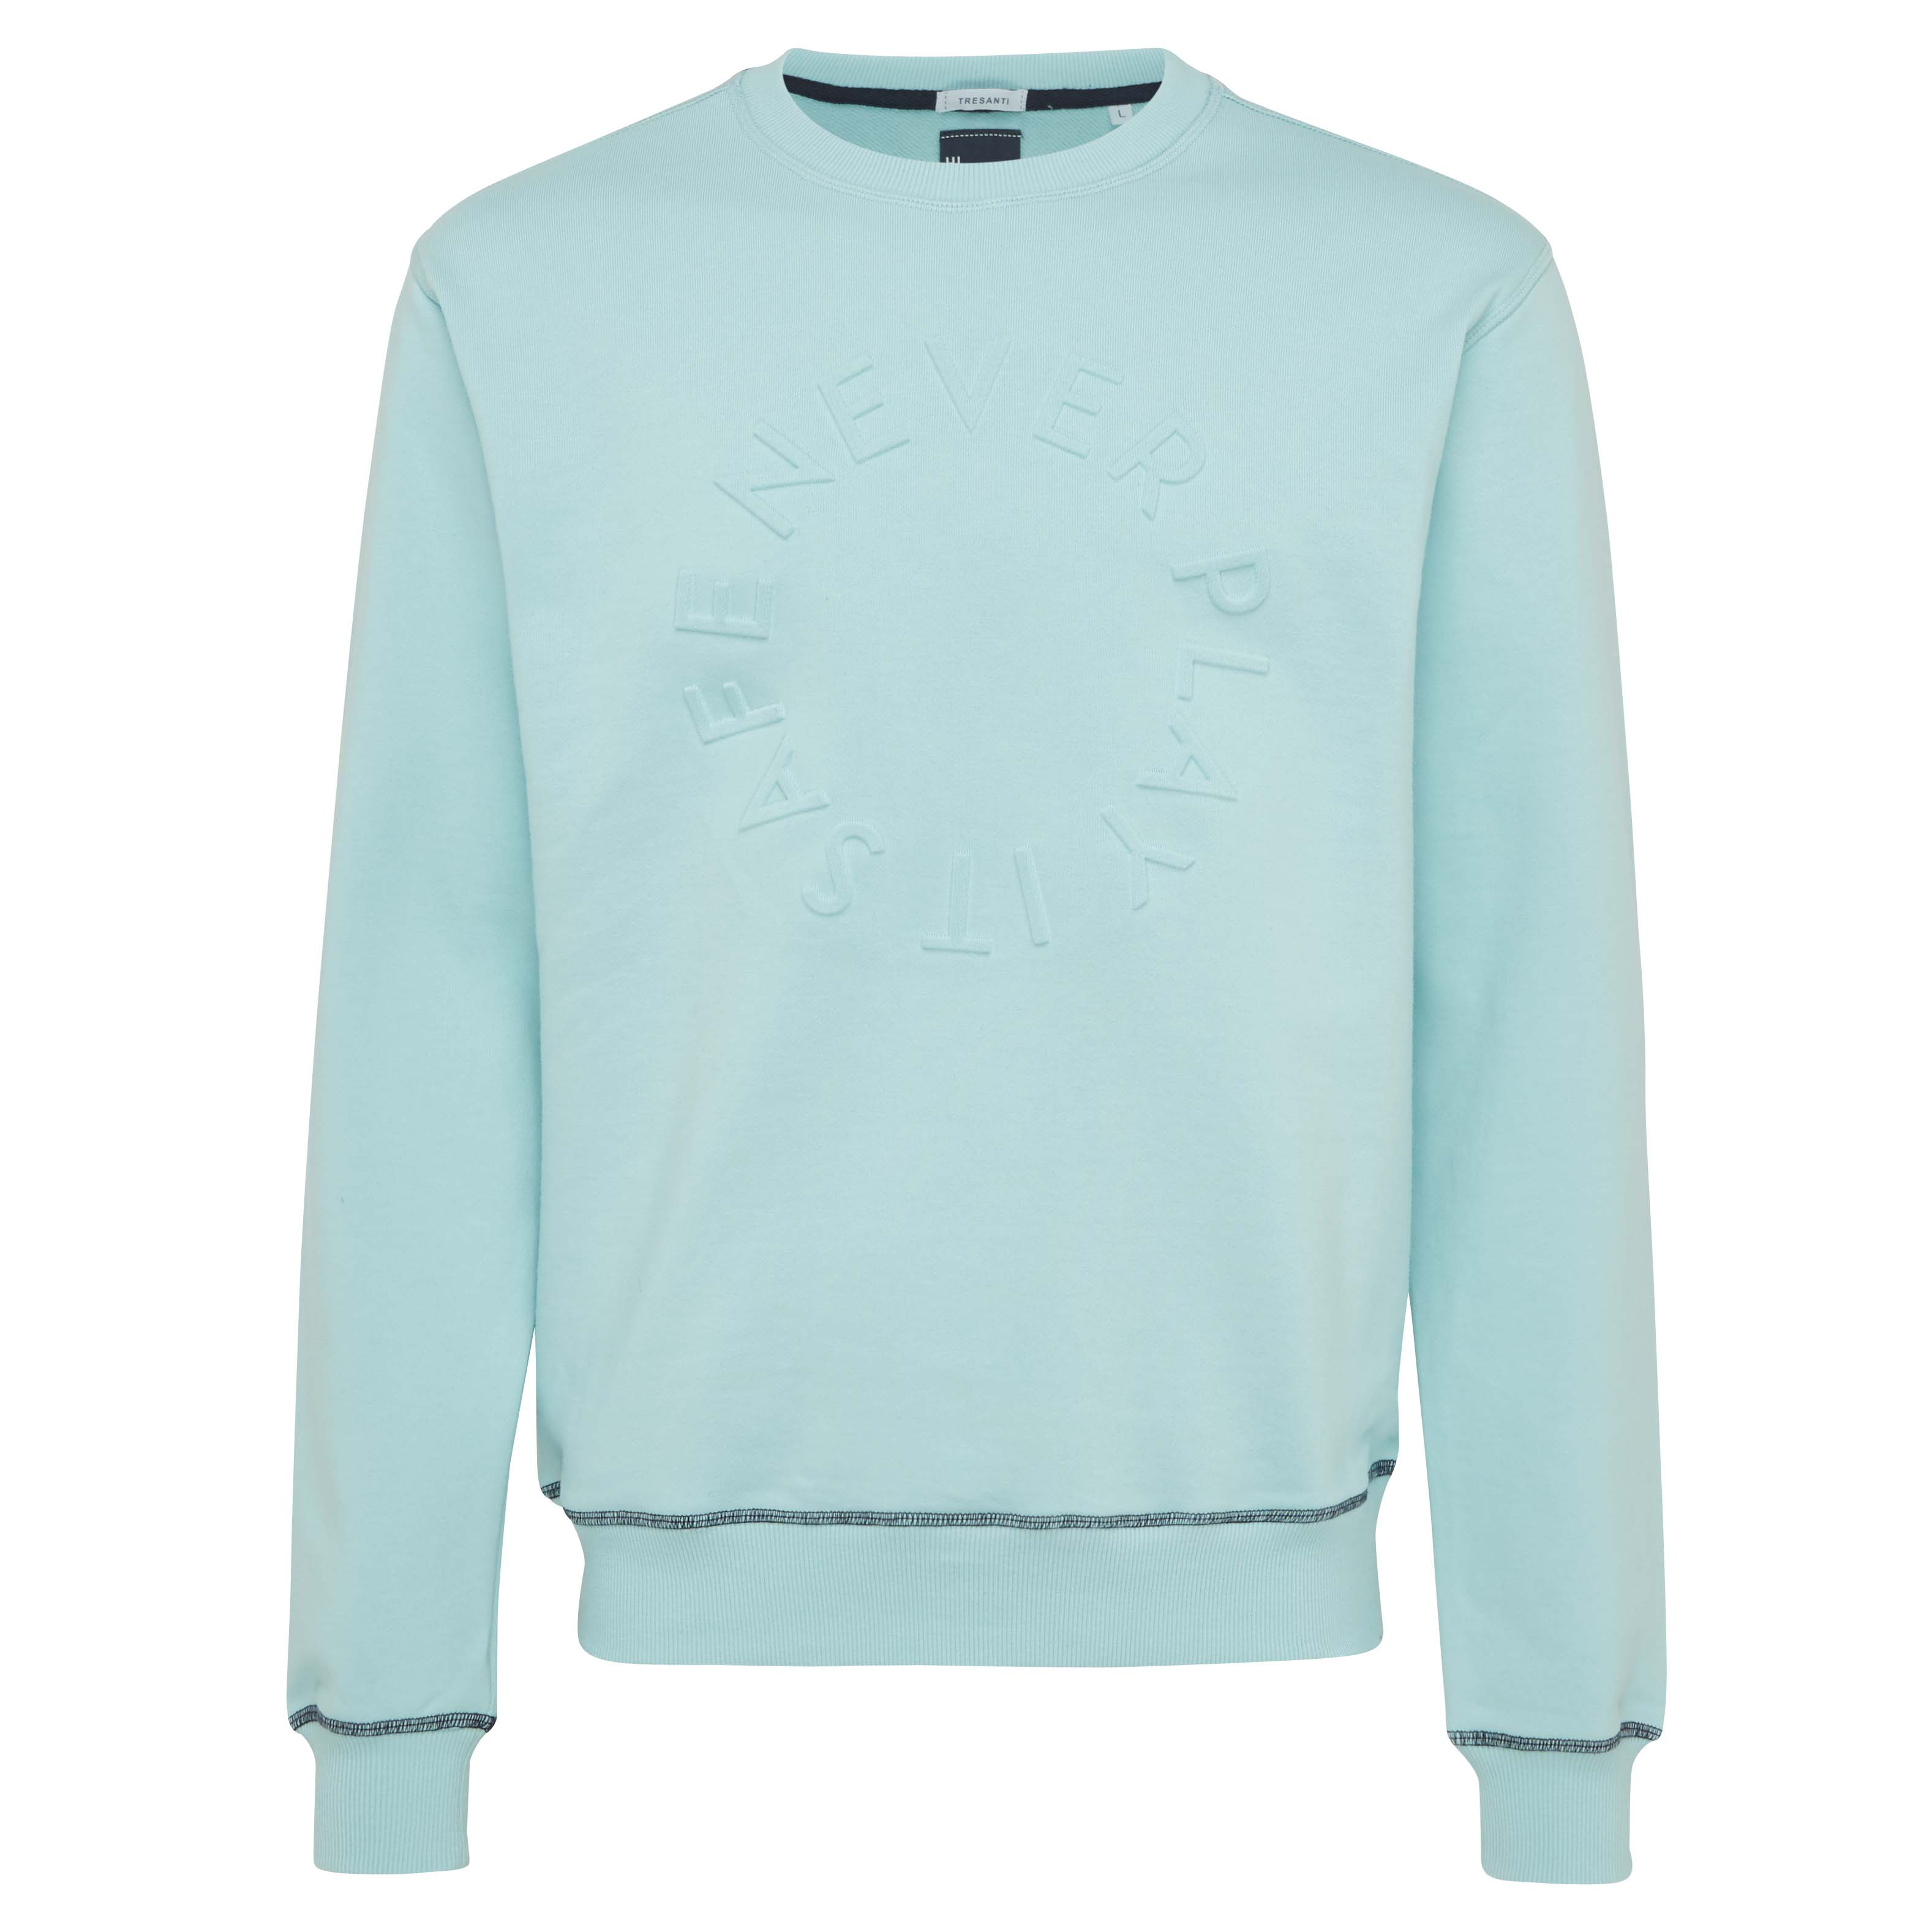 Ted | Sweater round-neck mint green